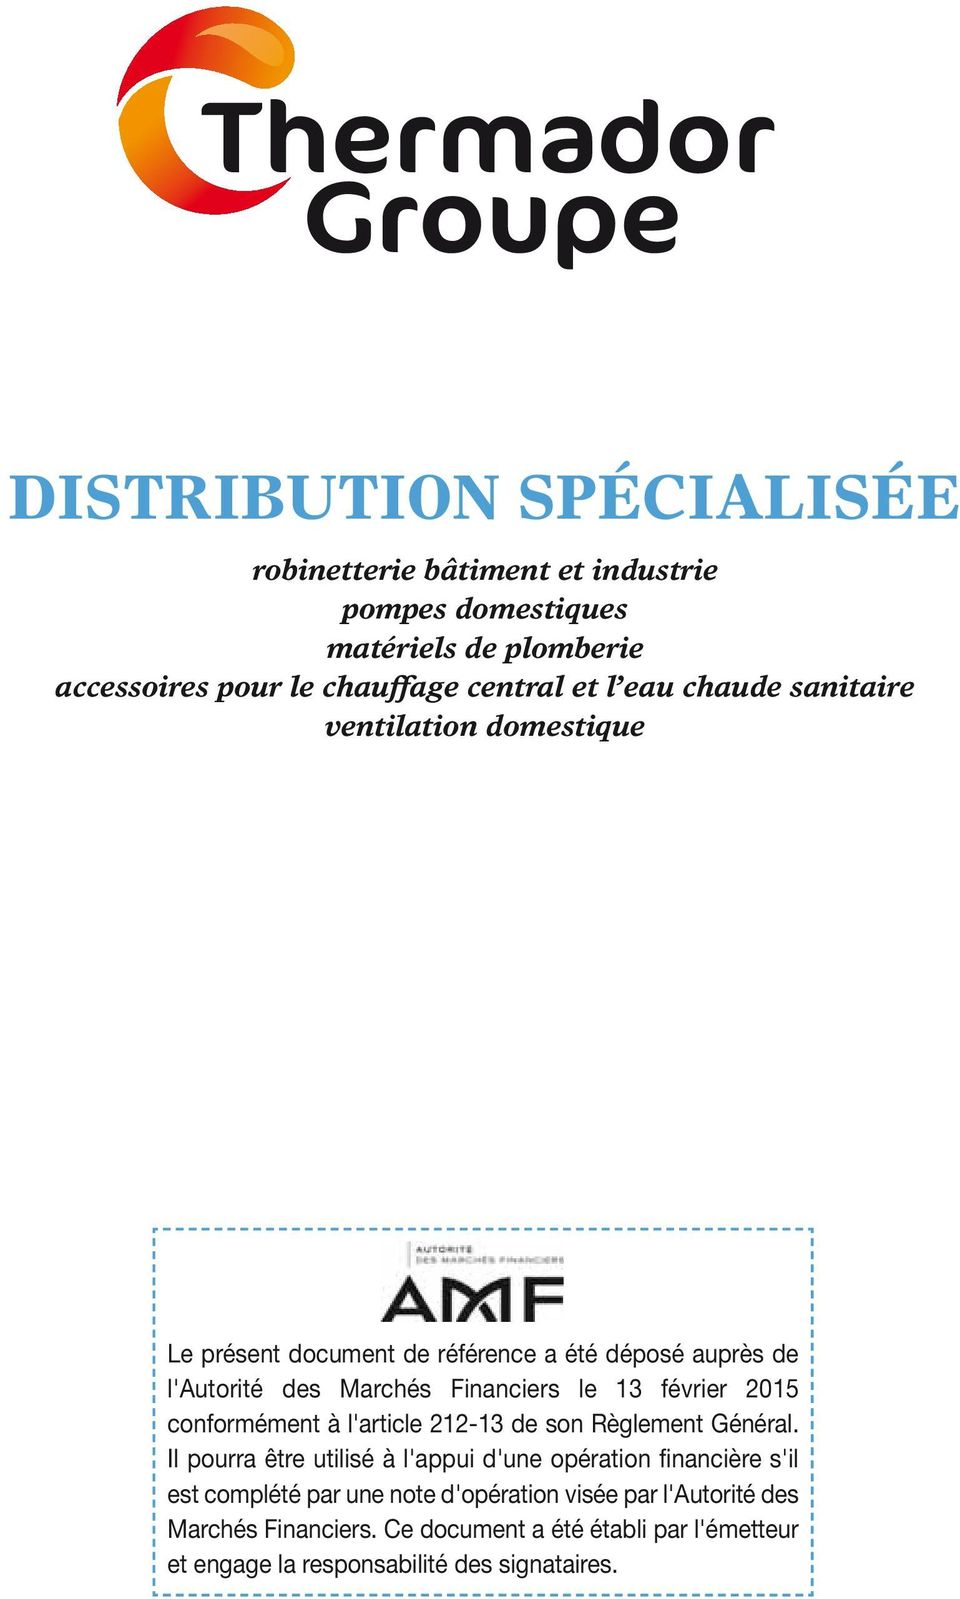 Distribution specialisee